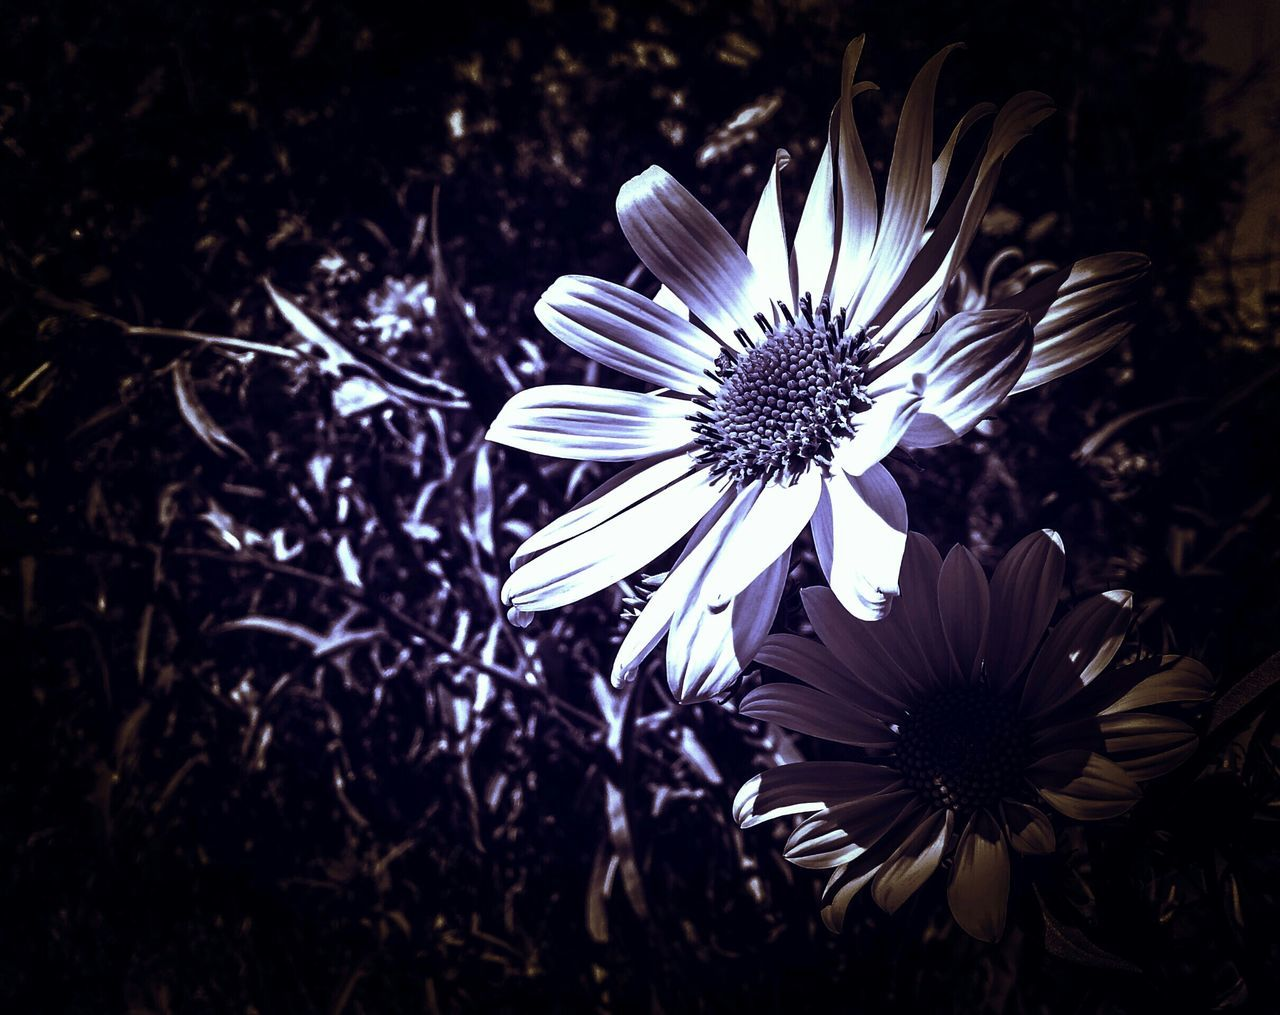 flower, fragility, petal, flower head, growth, nature, beauty in nature, freshness, plant, blooming, day, no people, close-up, outdoors, osteospermum, passion flower